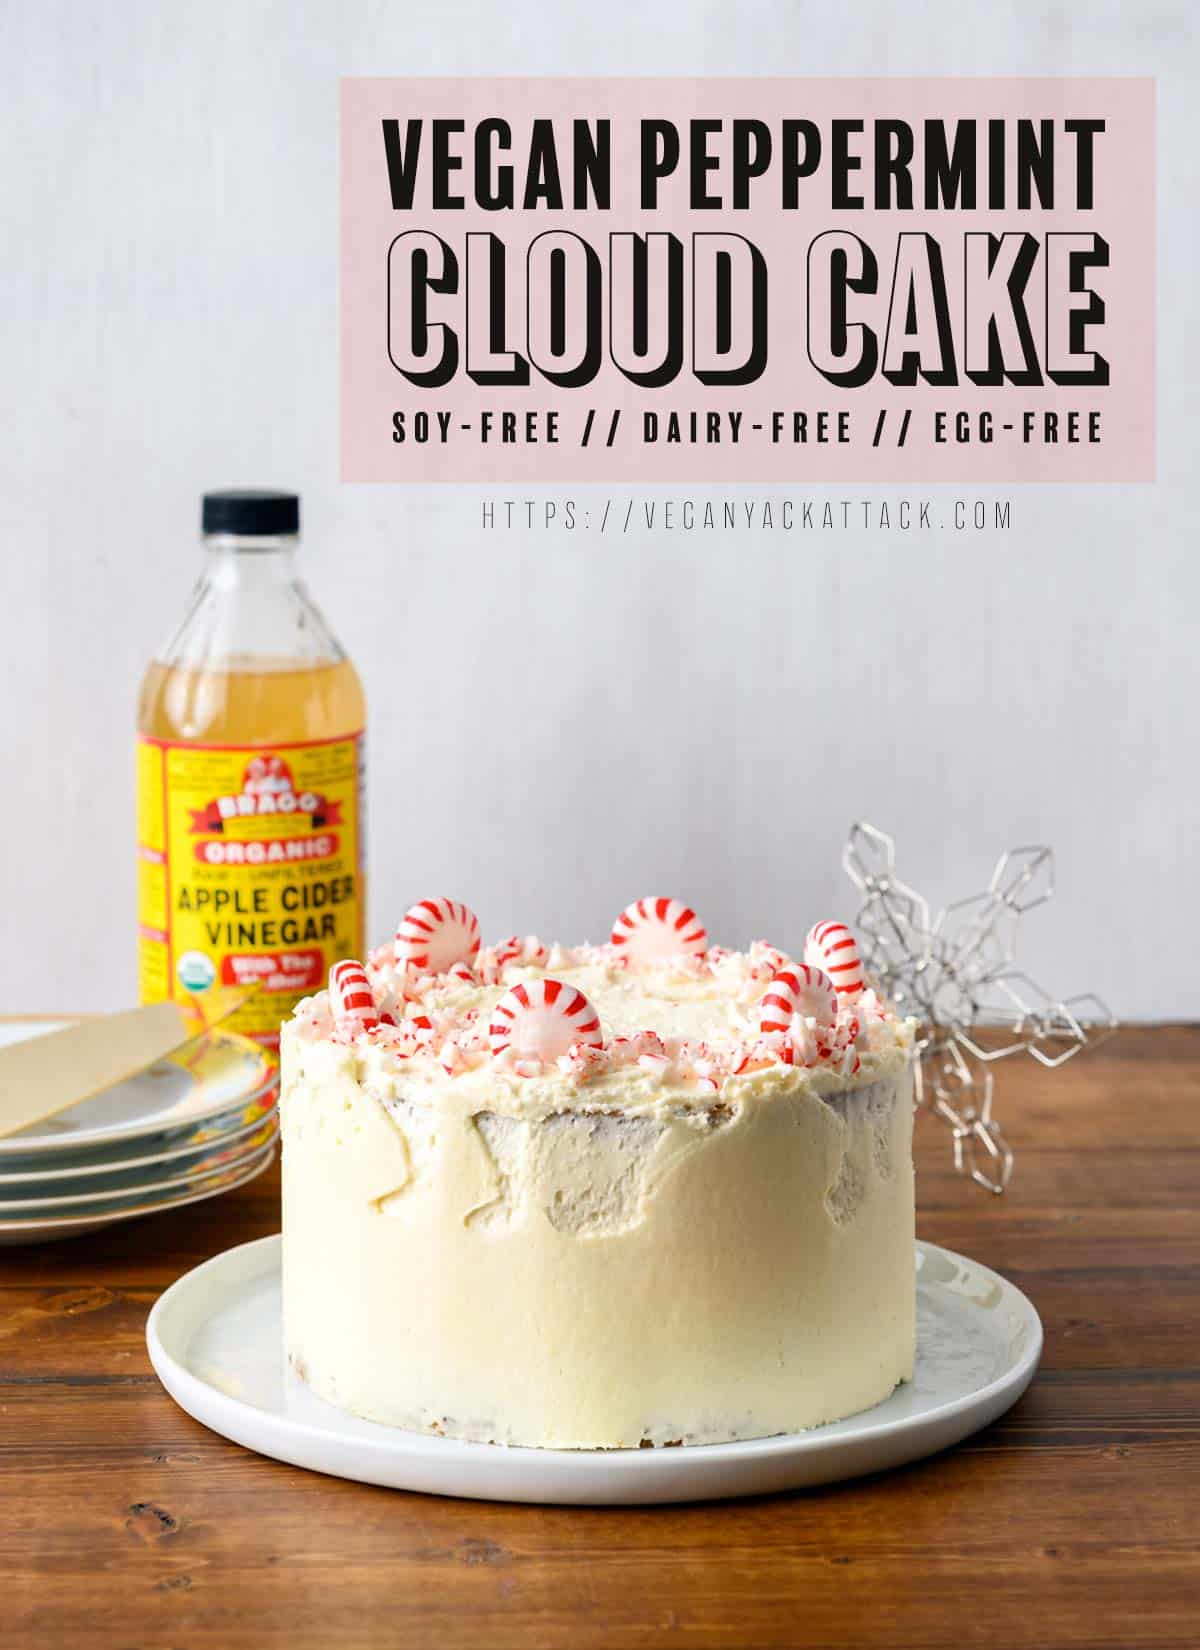 Image of small, layered cake with peppermints on top, serving plates and apple cider vinegar beside it. Text overlay reads: Vegan Peppermint Cloud Cake